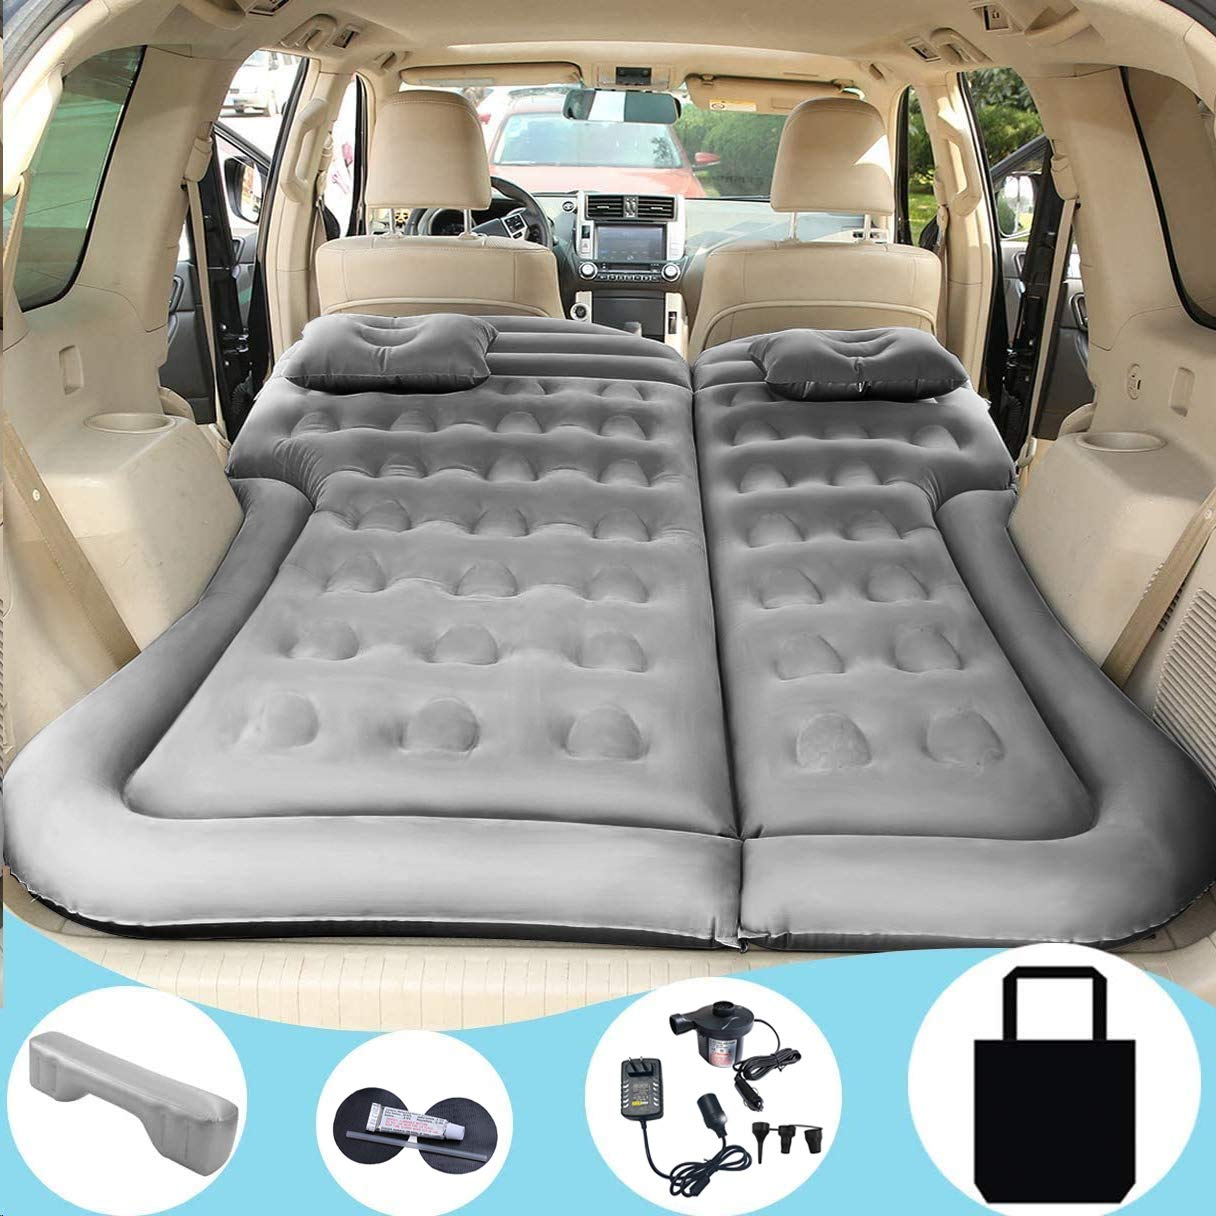 Portable Inflatable Bed Pillow